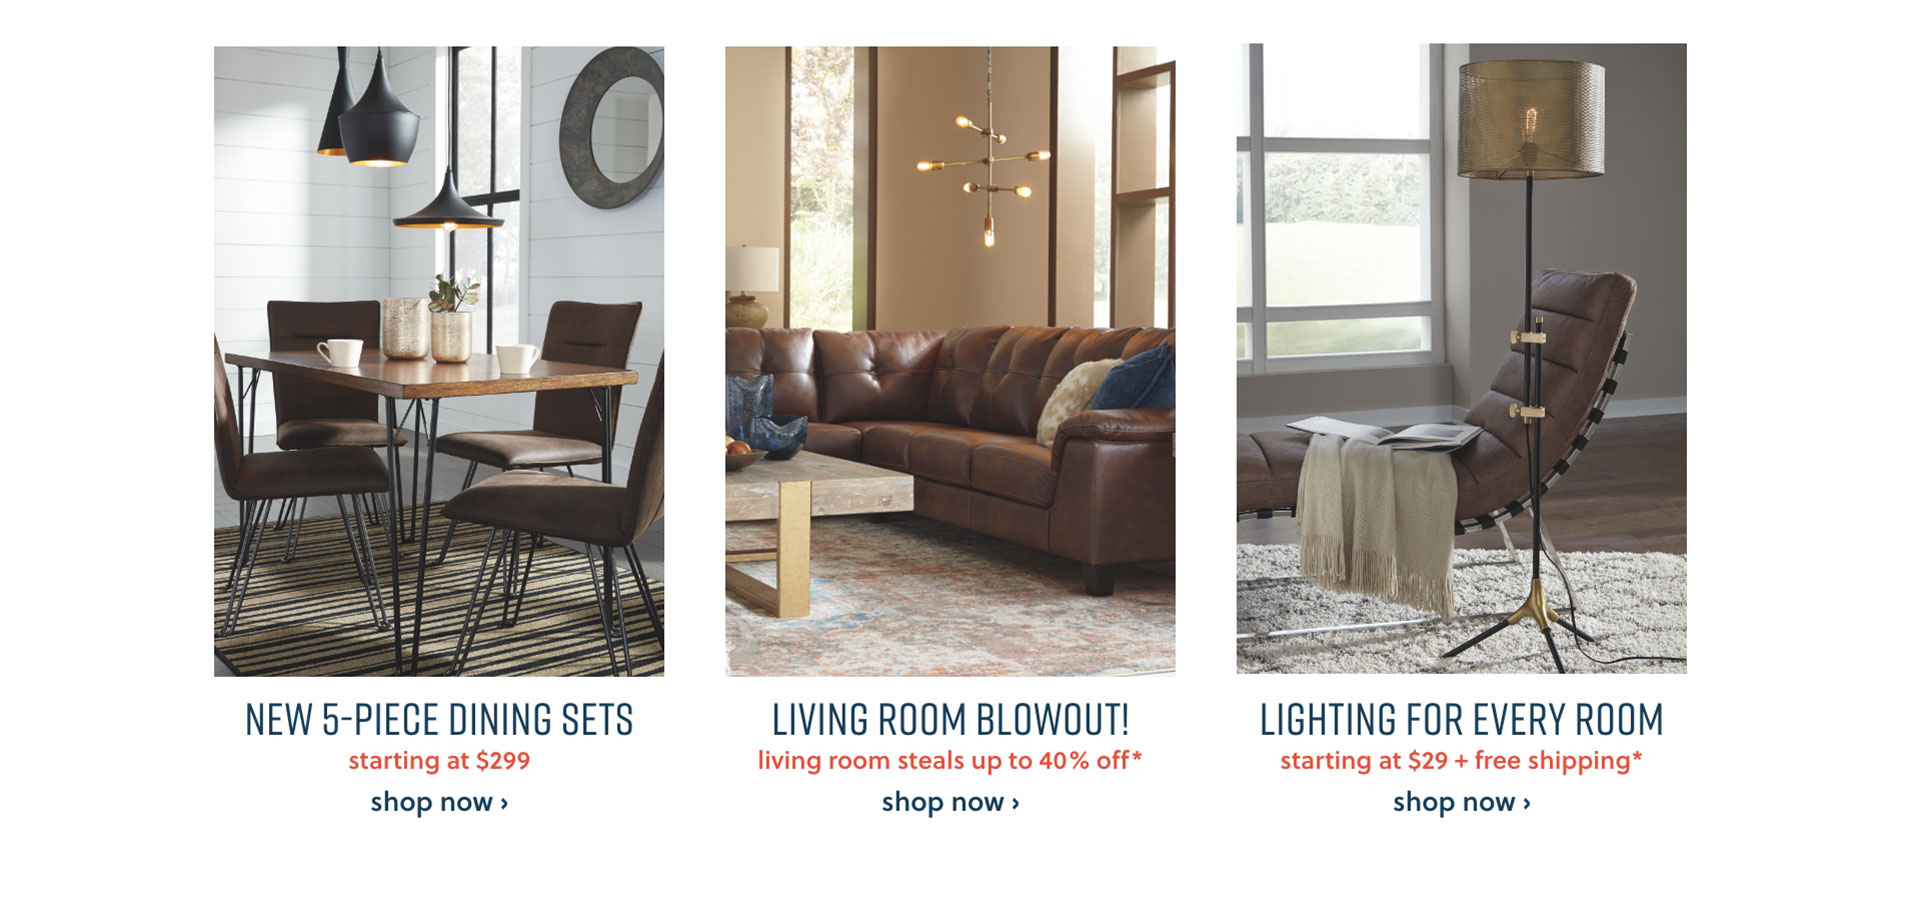 New 5-Piece Dining Sets, Living Room Game Day Seating, Lighting for every room